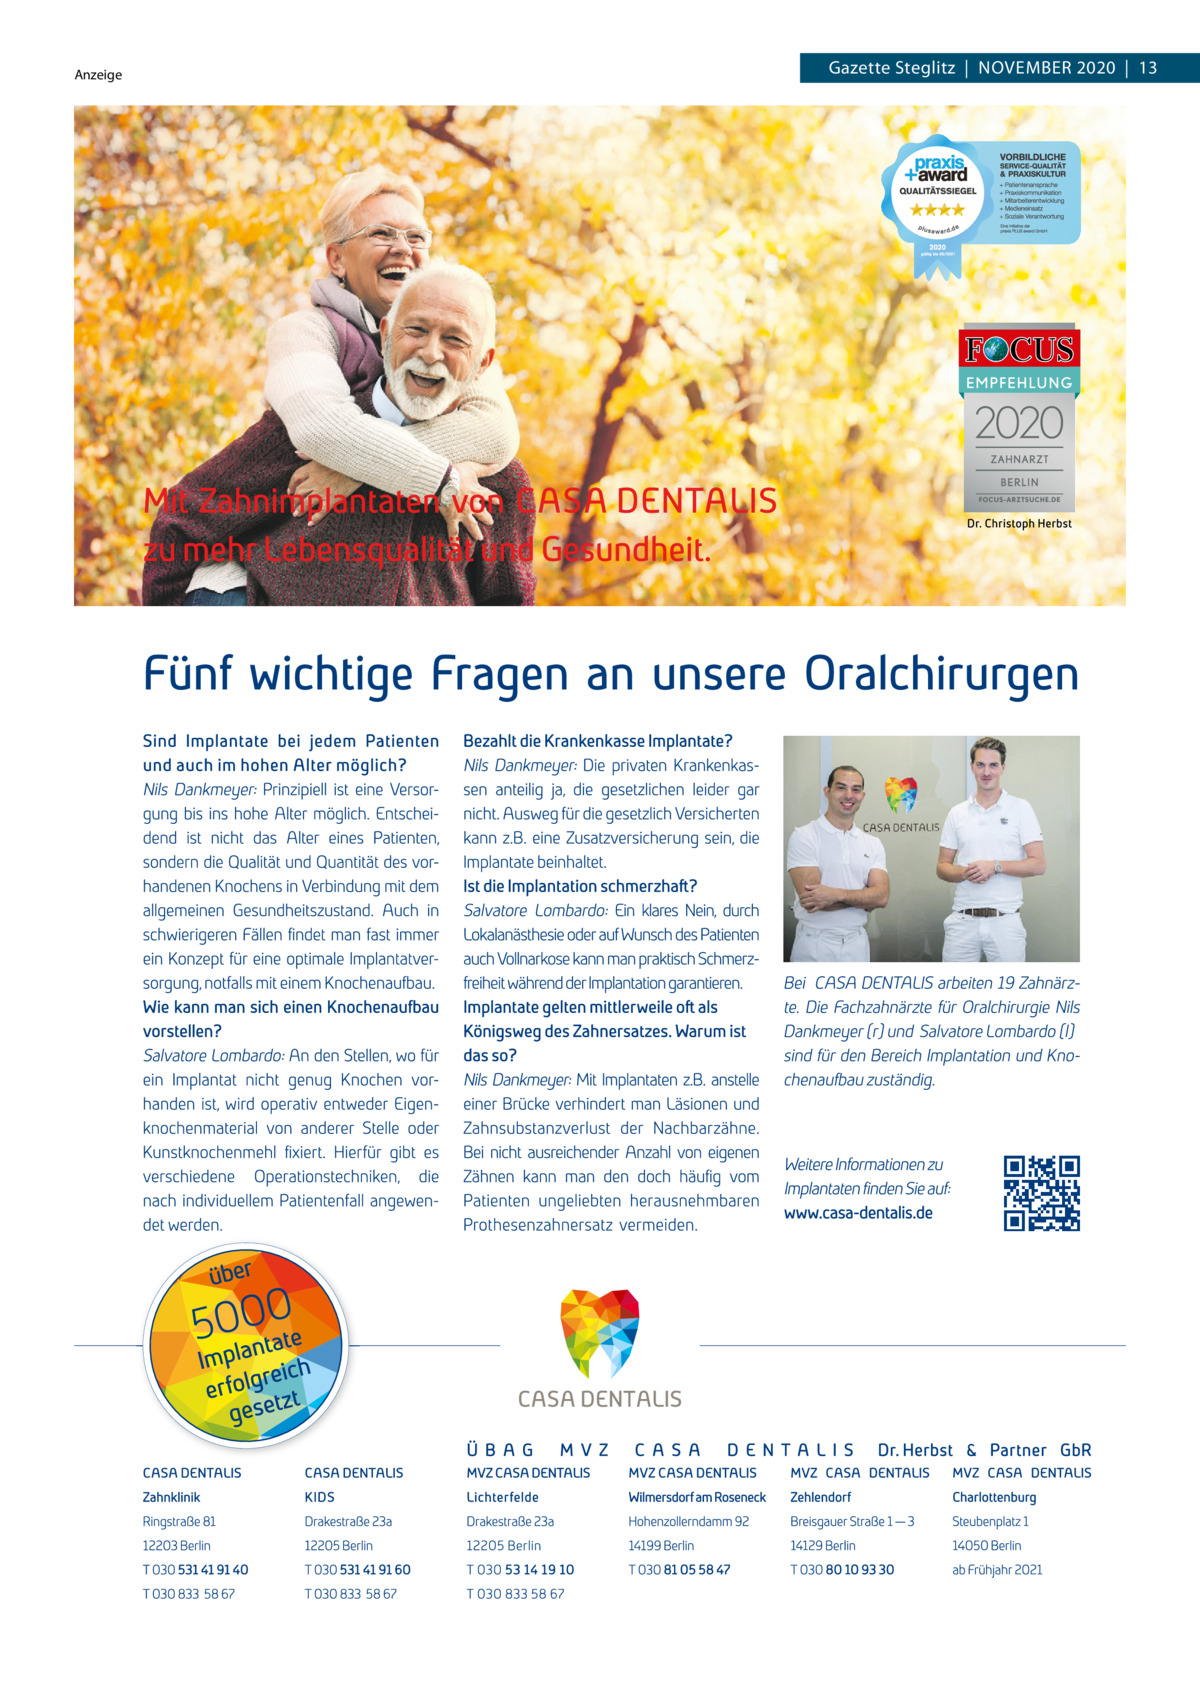 Anzeige  Gazette Steglitz  |  November 2020  |  13